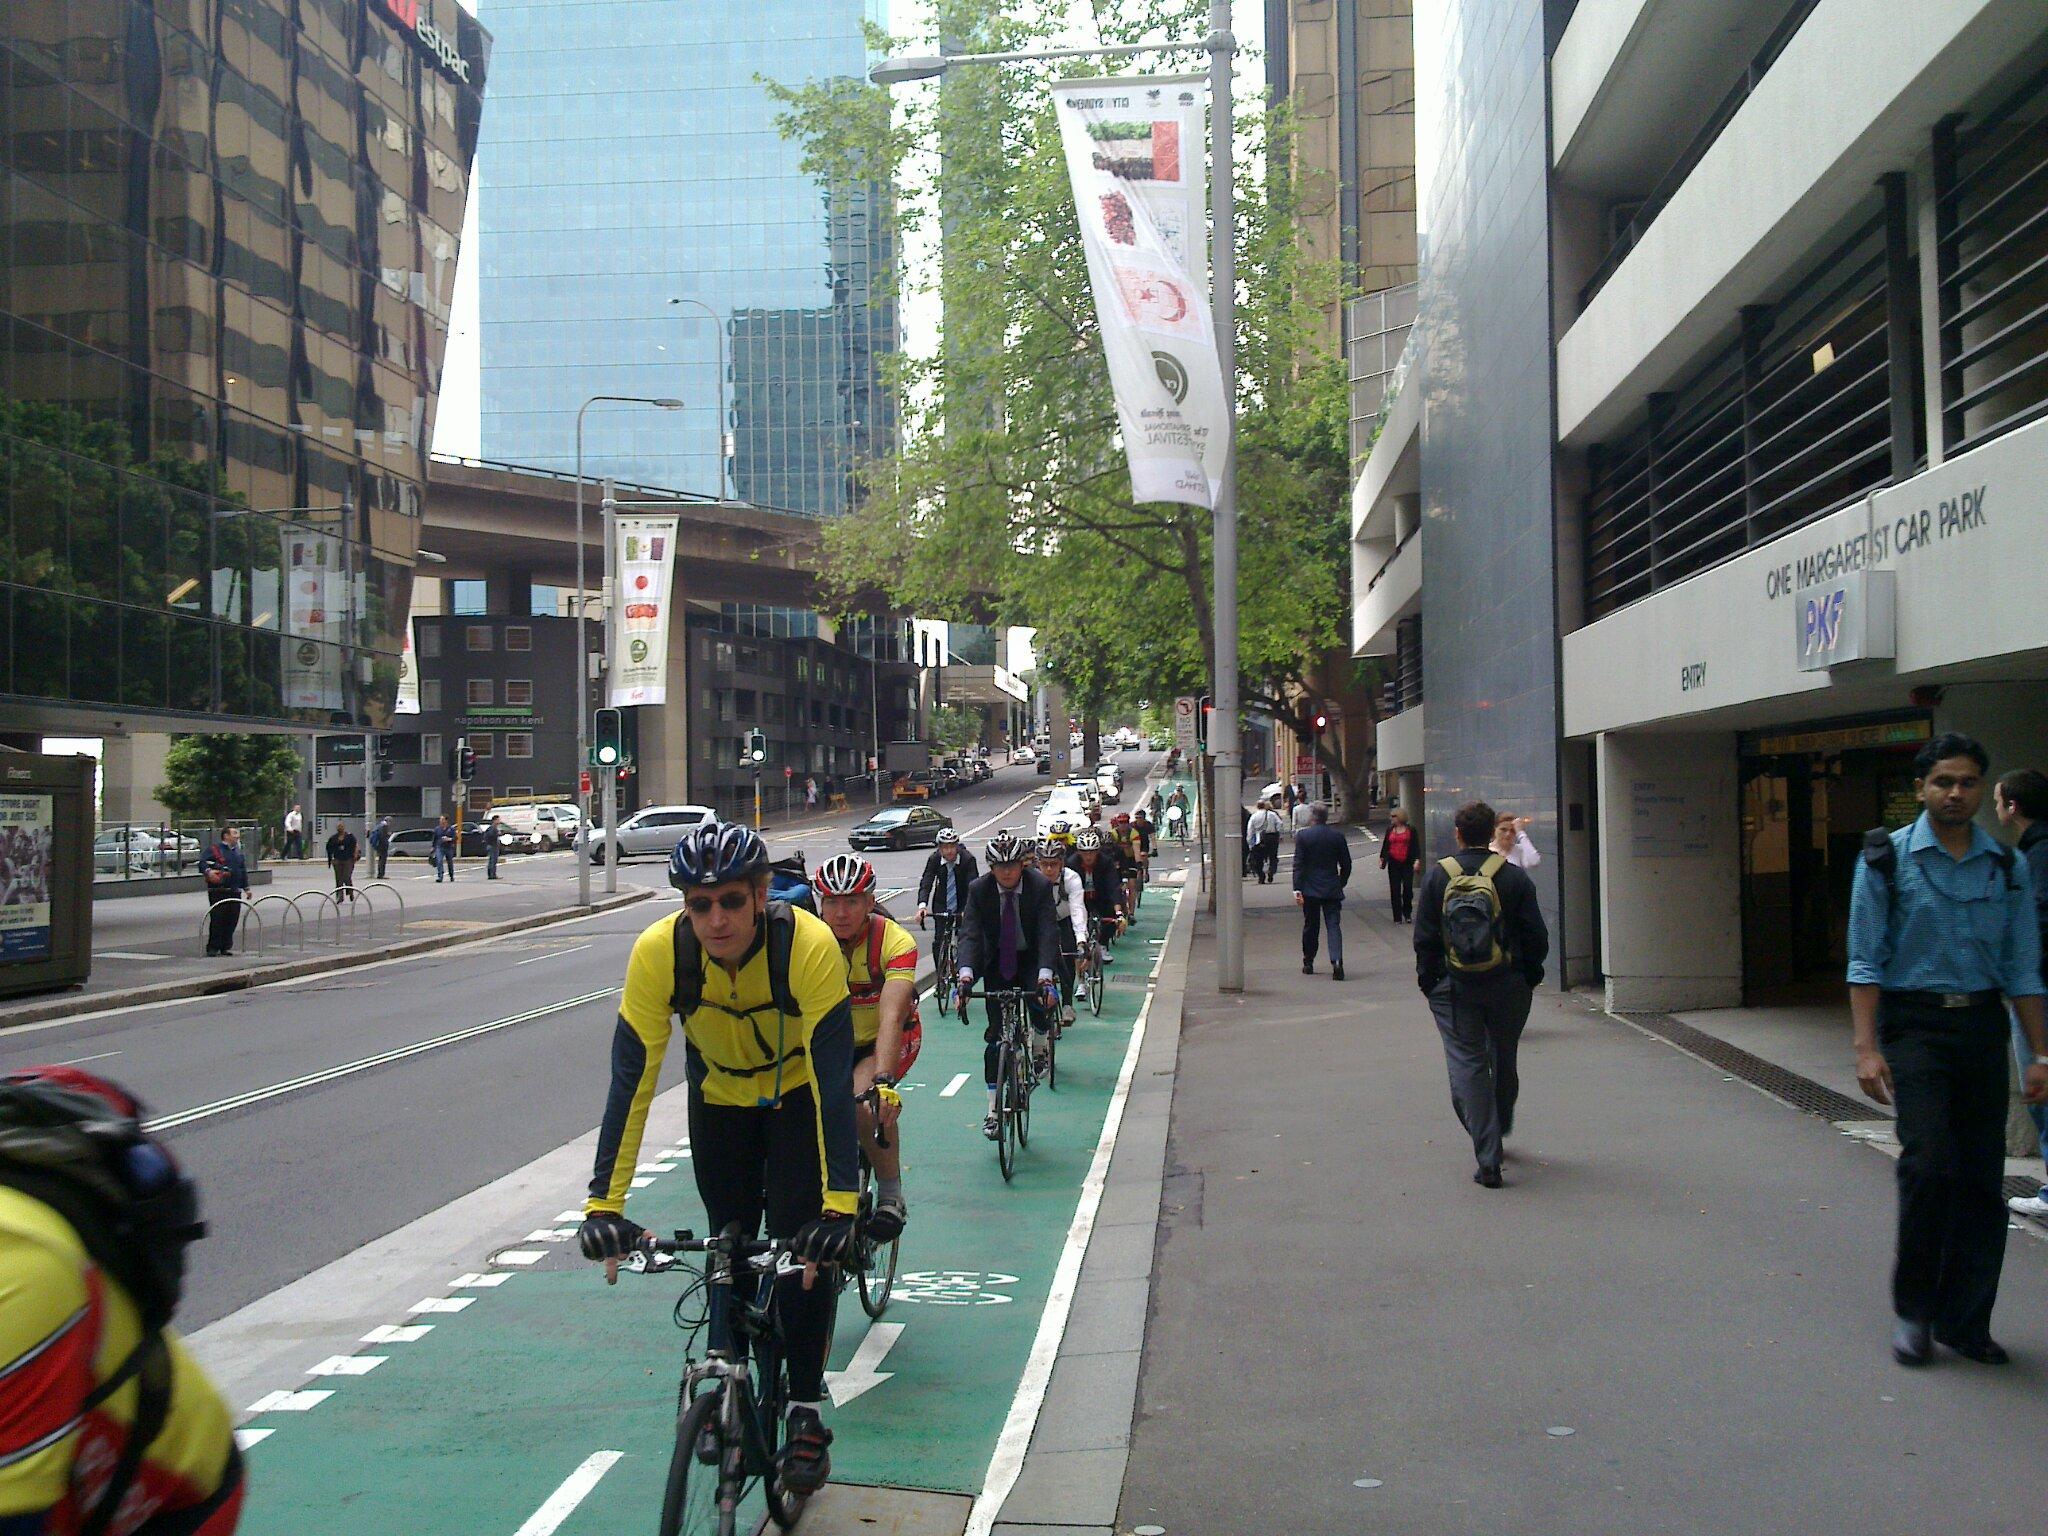 Cyclists using a cycle lane